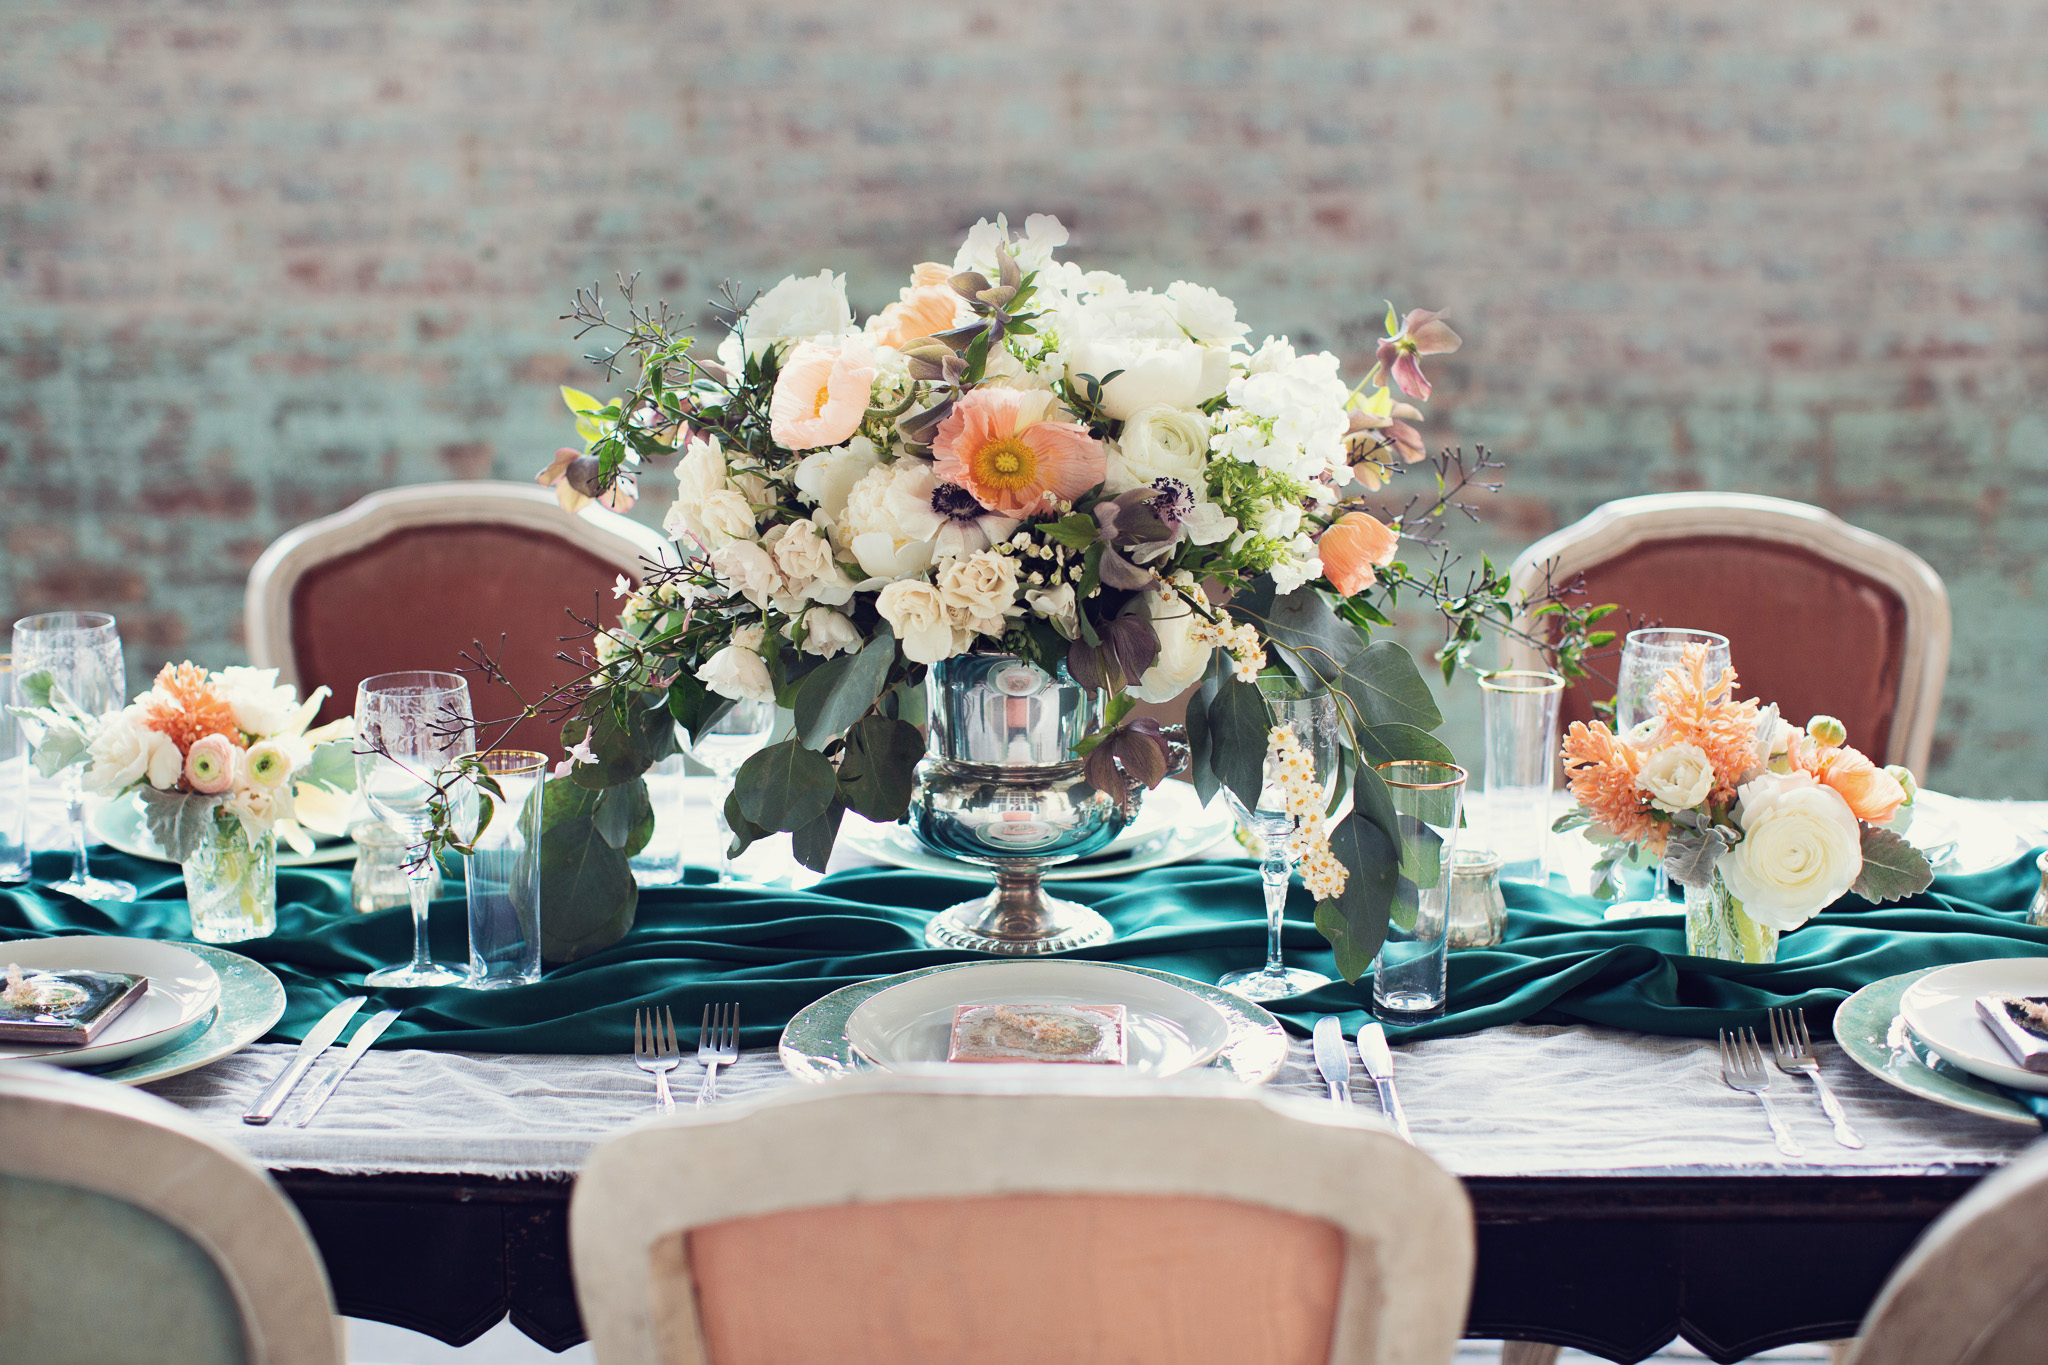 chic-classic-wedding-centerpiece-white-peach